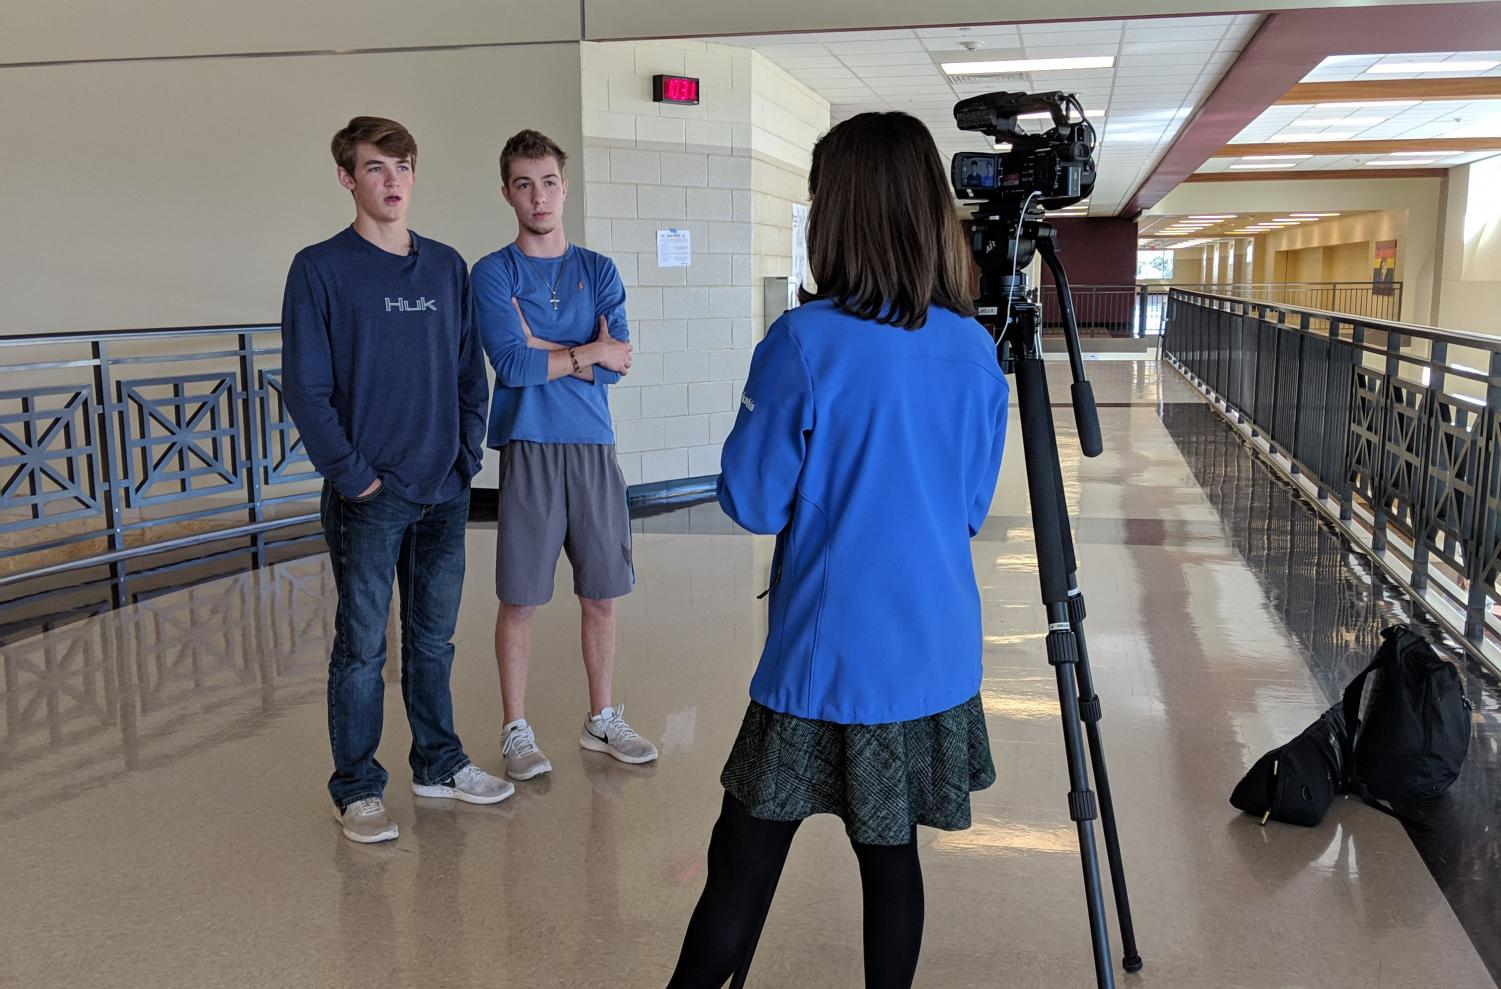 Left is Tyler Ludemann, Right is Nick Goodrum being interviewed.